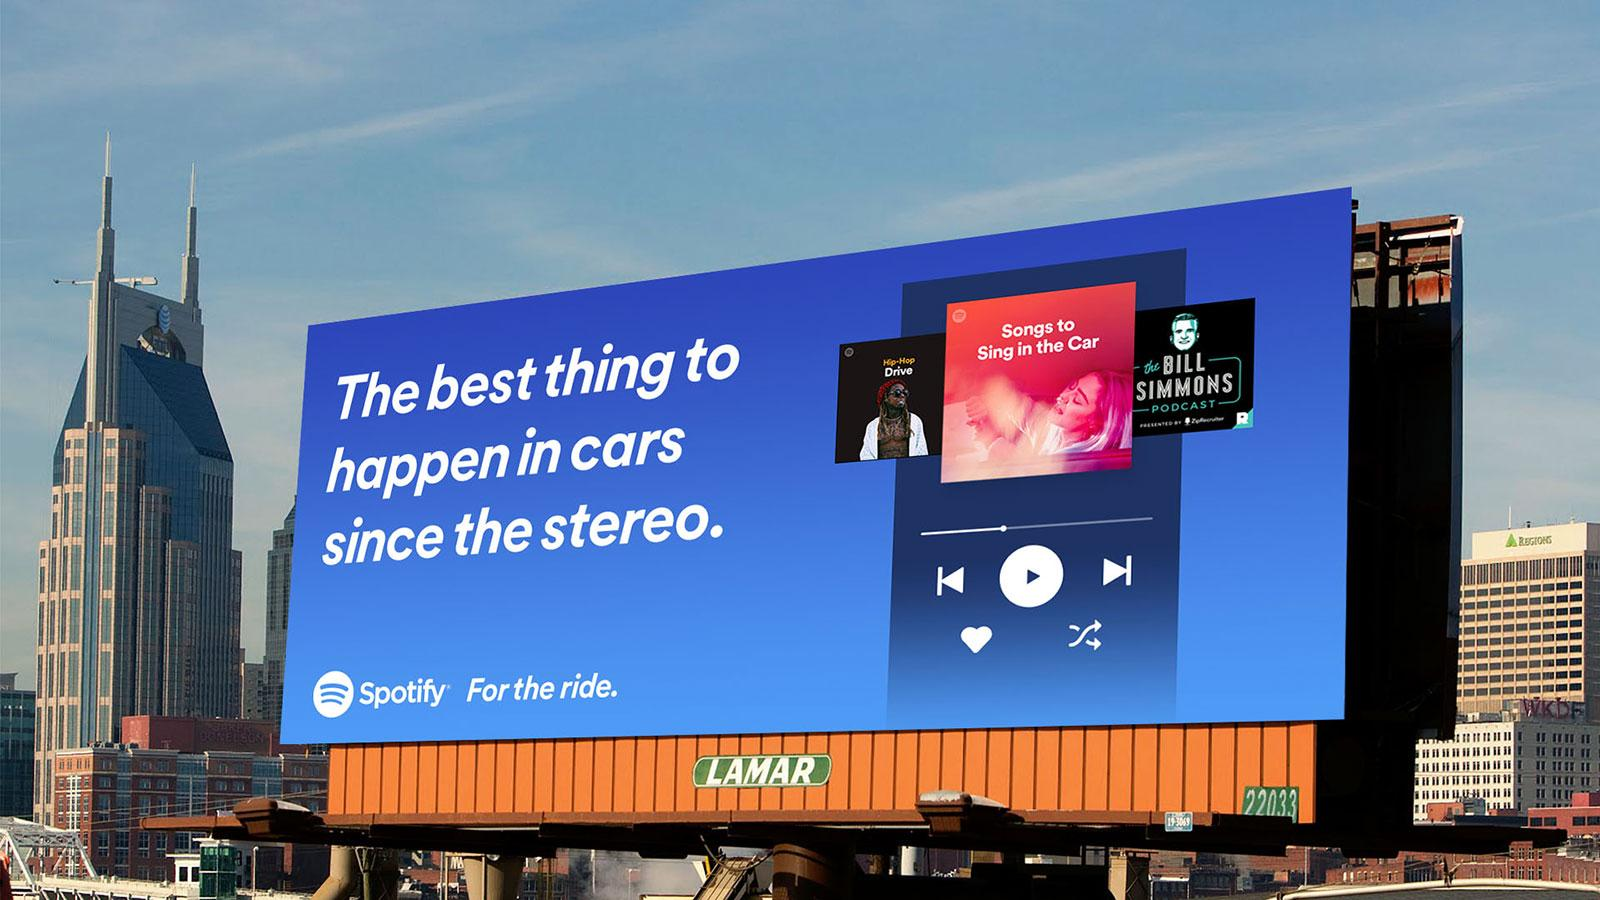 Spotify Plakat The best thing to happen in cars since the stereo